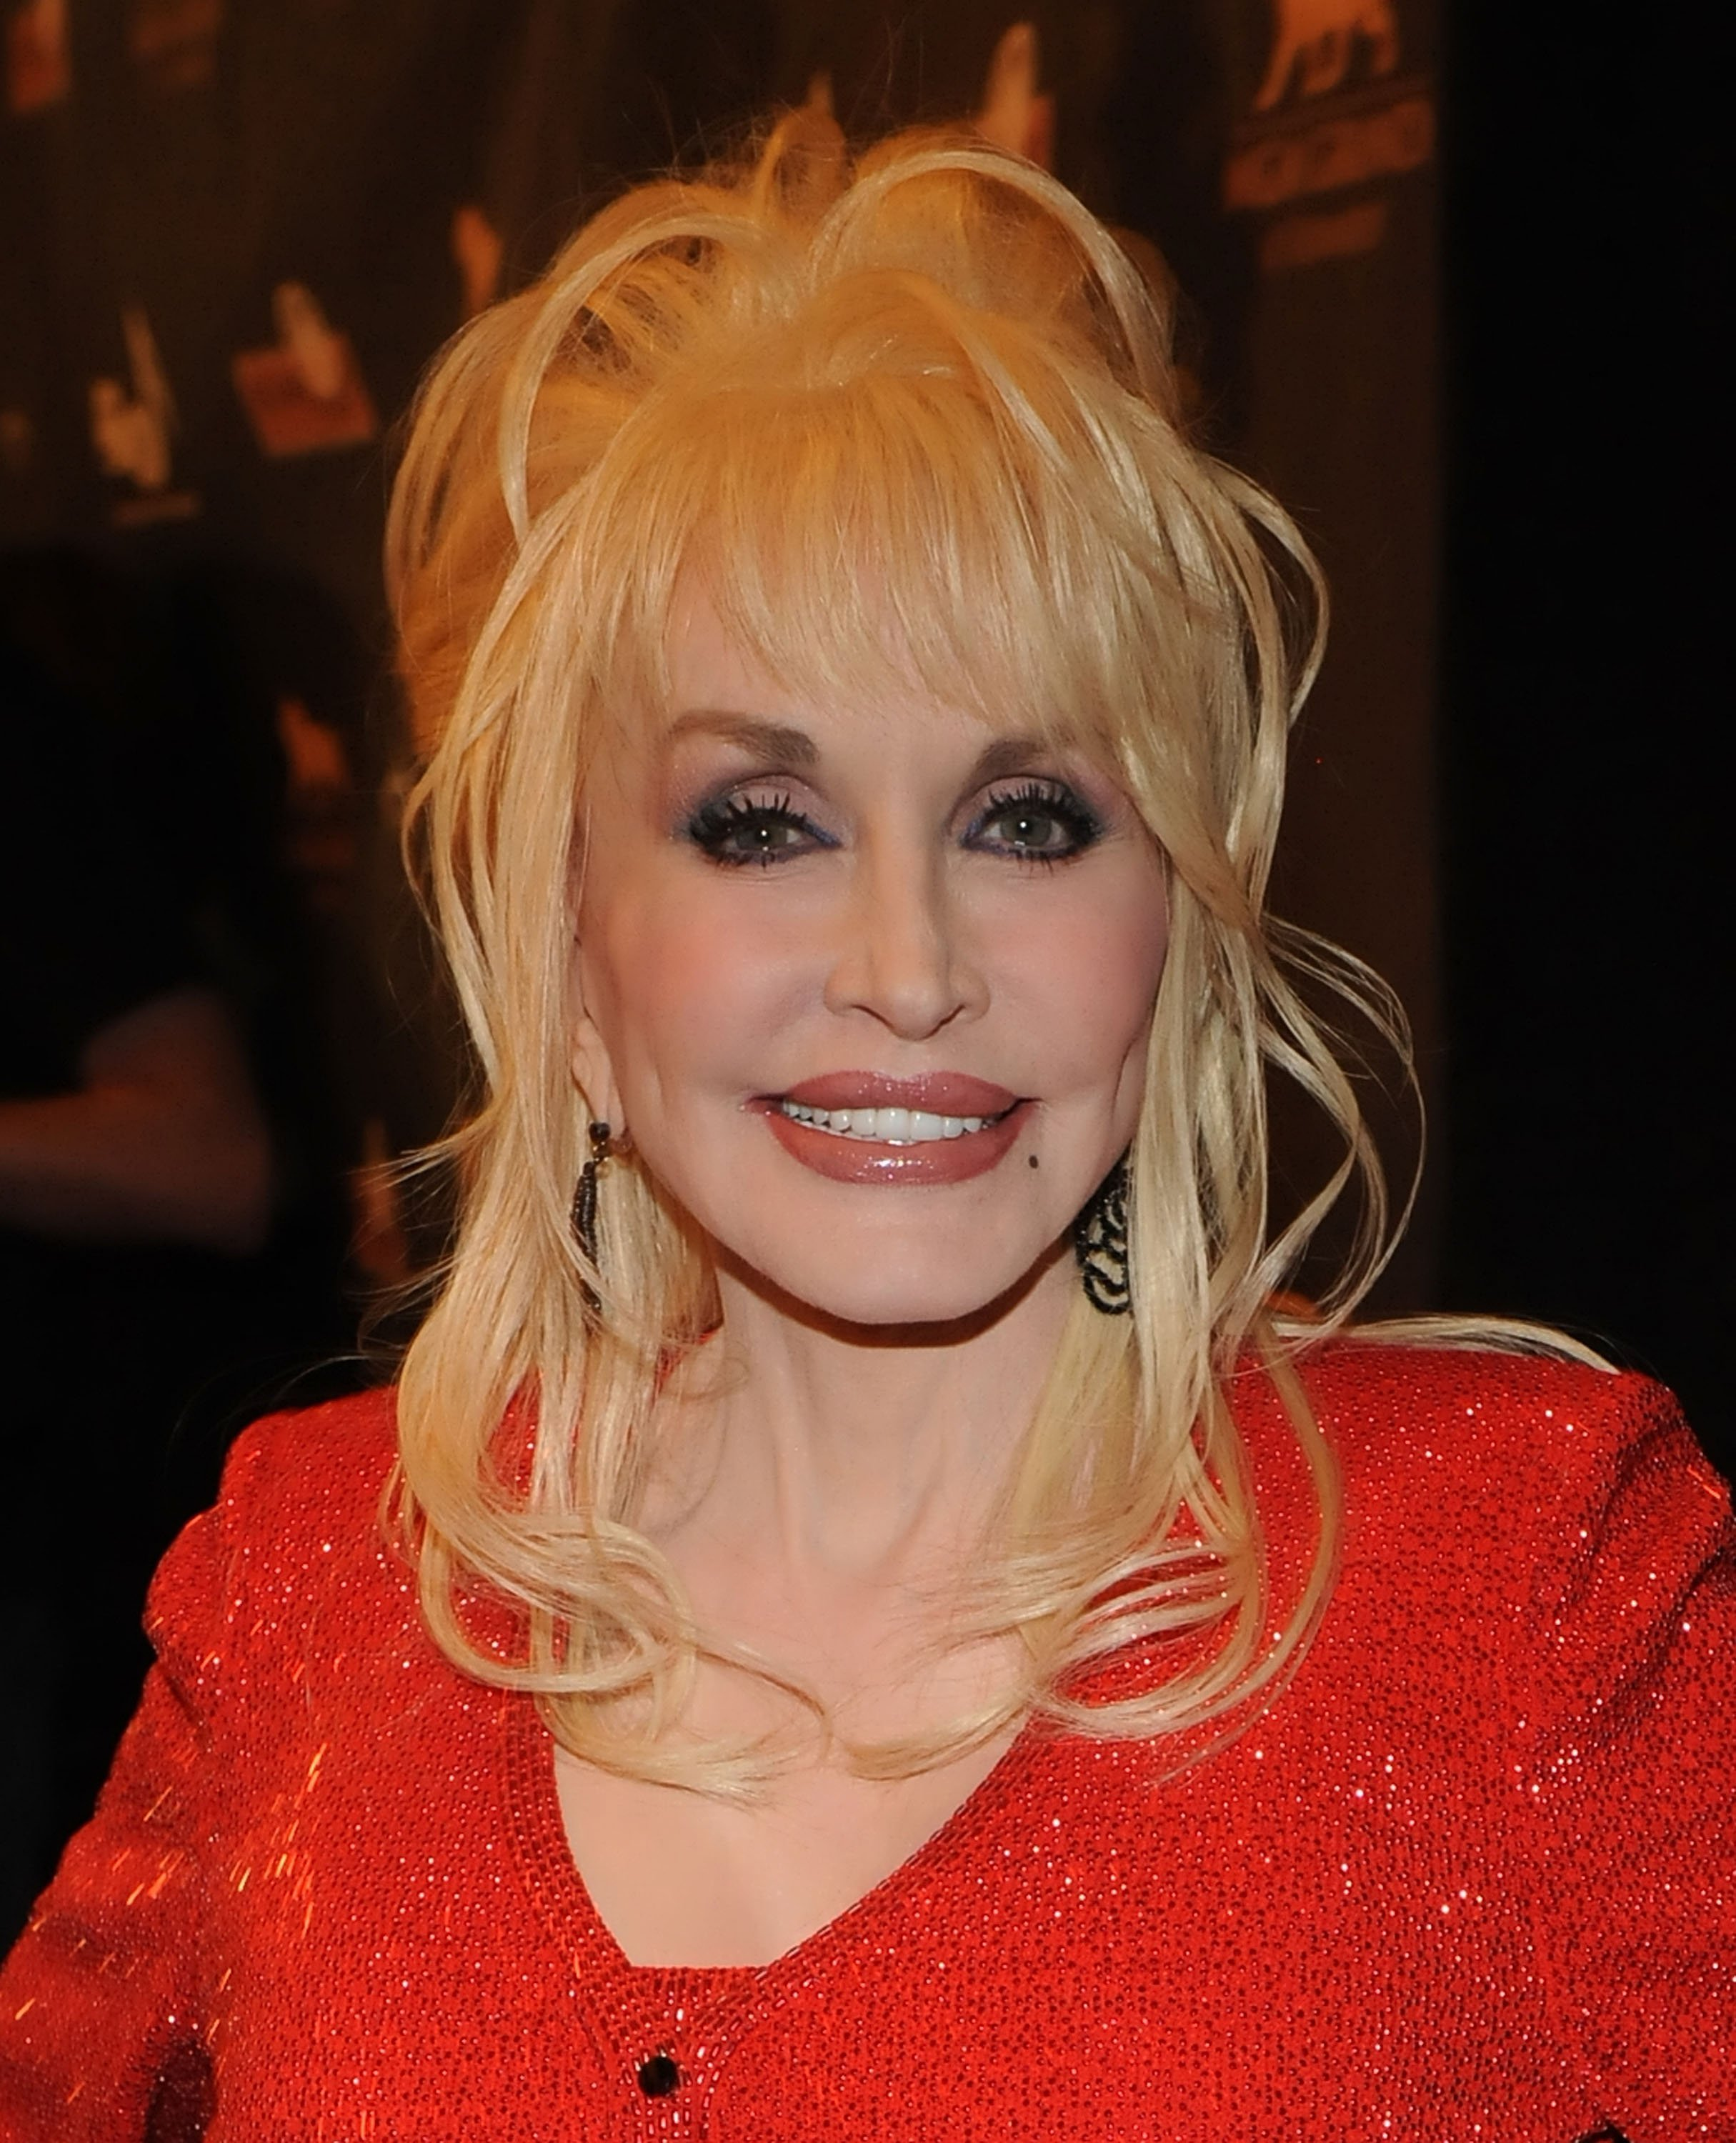 Dolly Parton attends the Kenny Rogers: The First 50 Years award show at the MGM Grand at Foxwoods on April 10, 2010, in Ledyard Center, Connecticut. | Source: Getty Images.